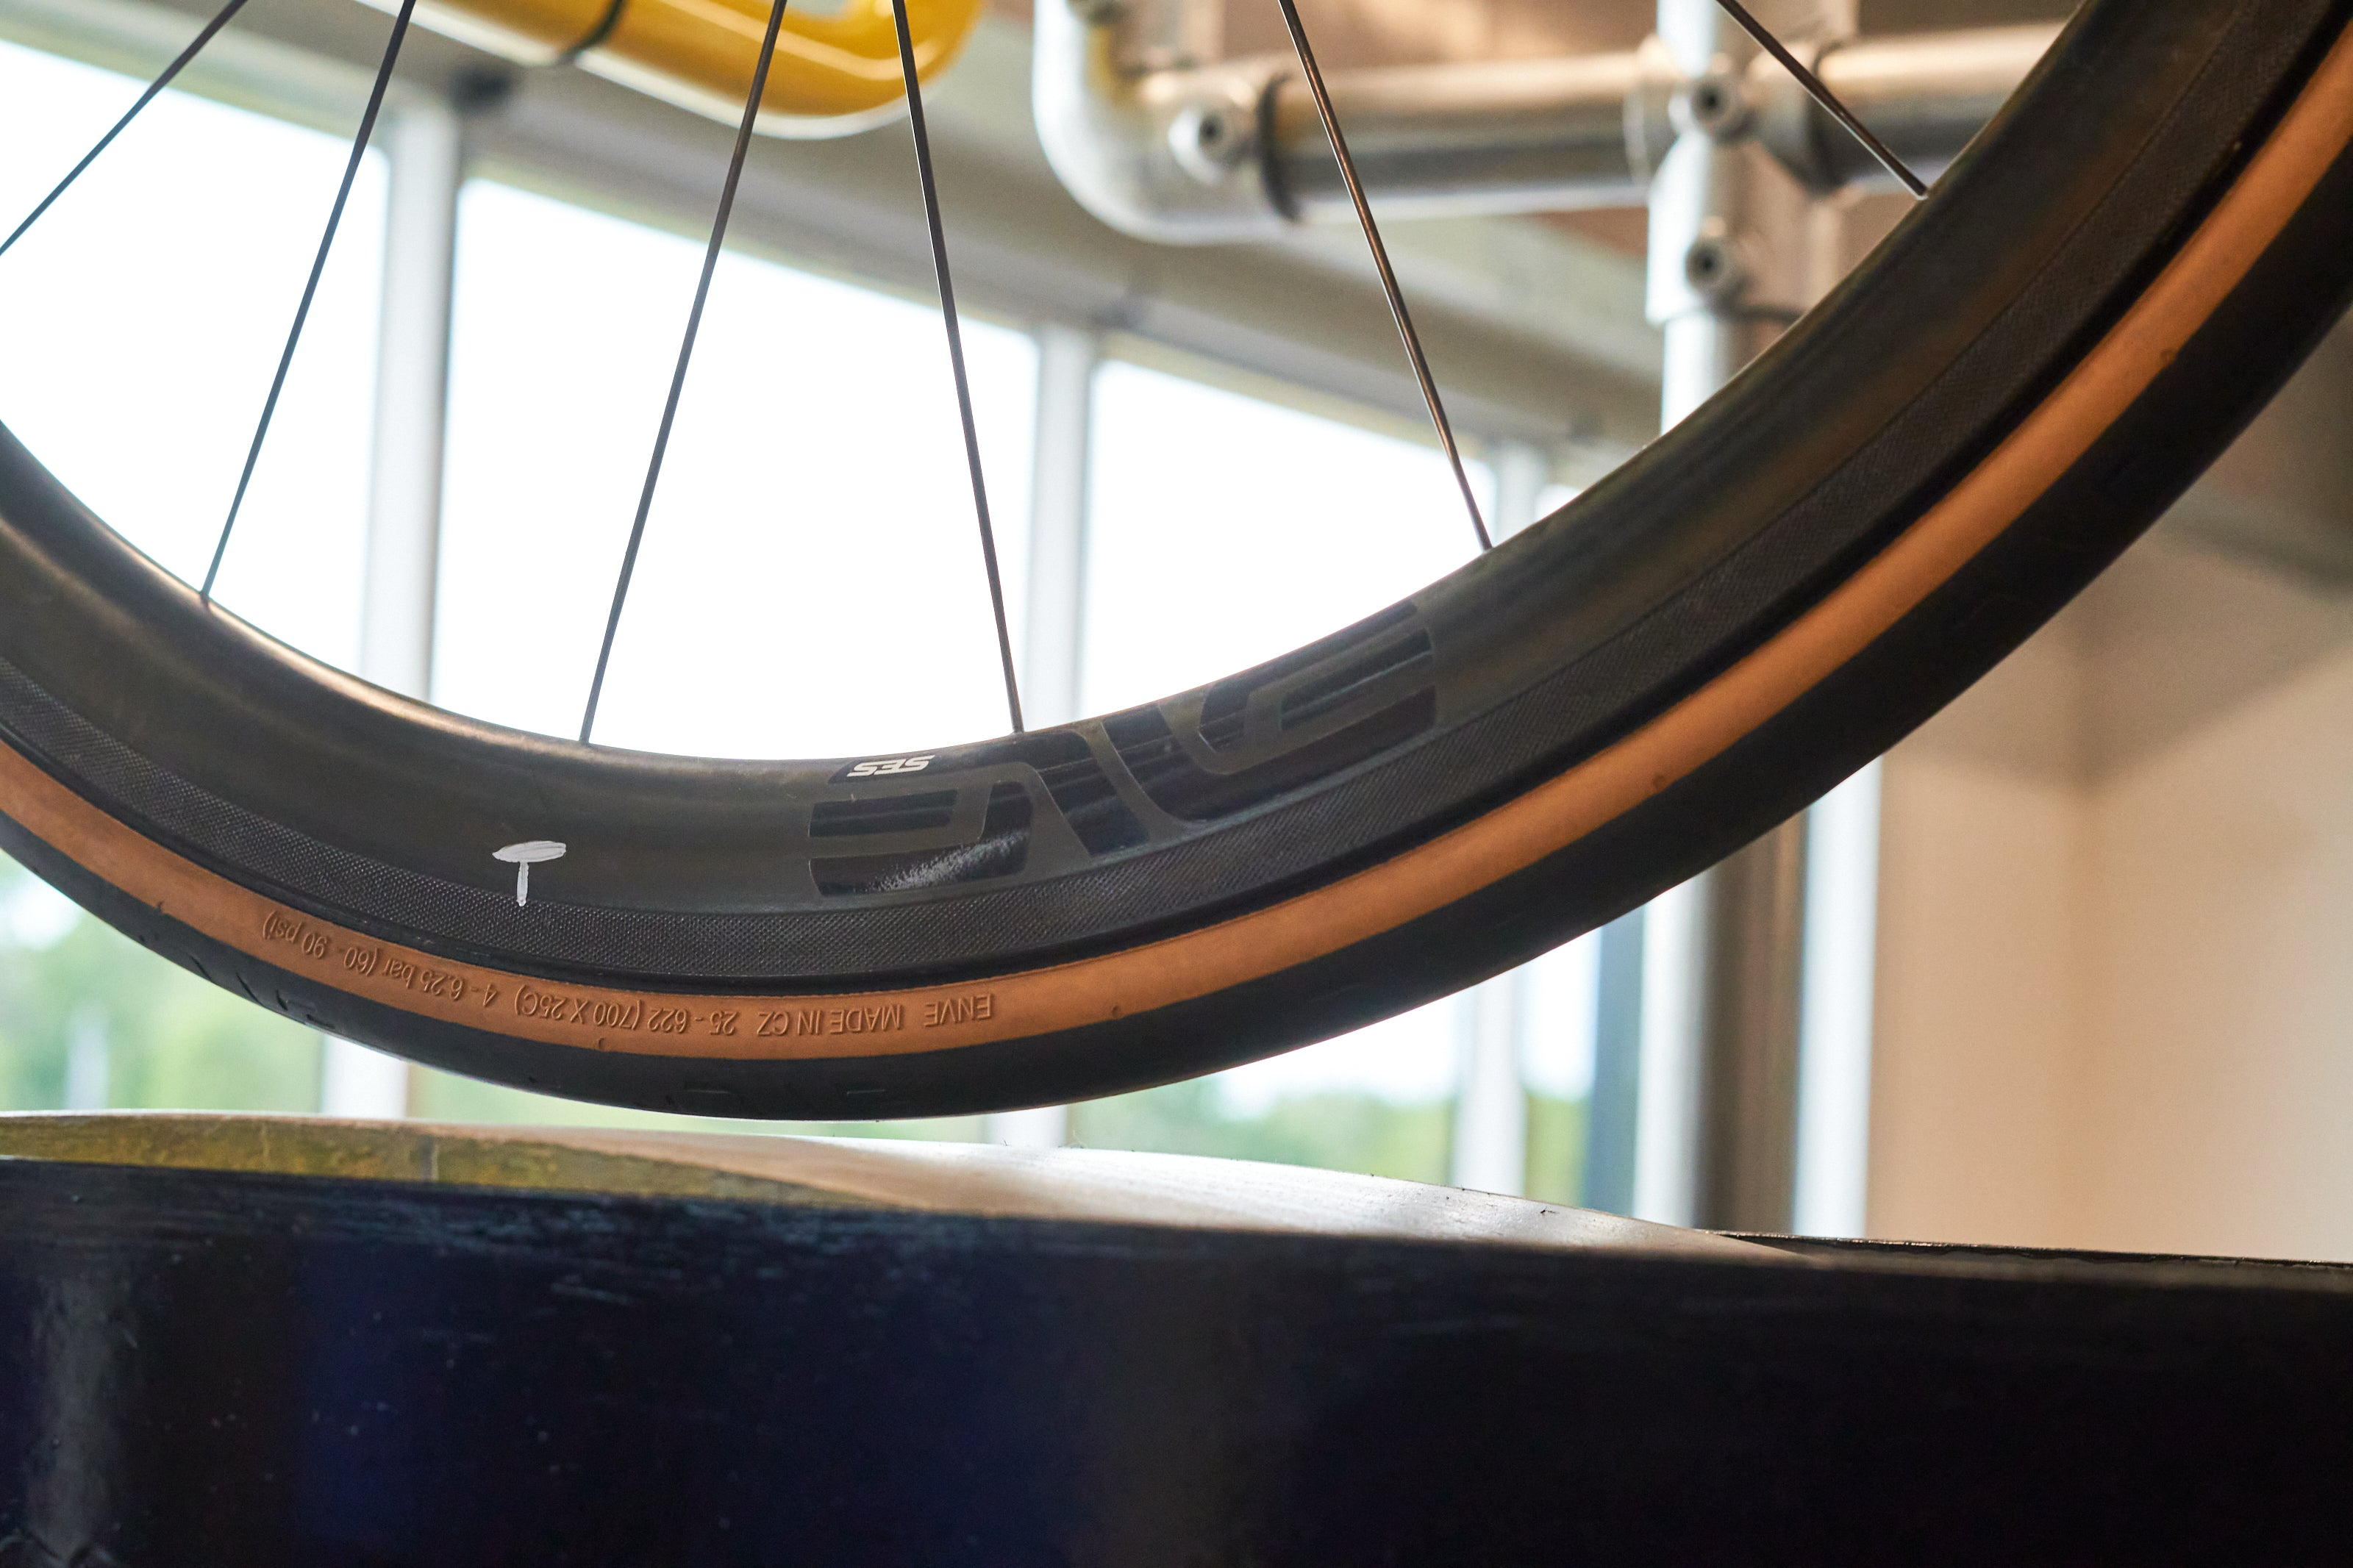 ENVE Factory tour with Contender Bicycles - tire testing